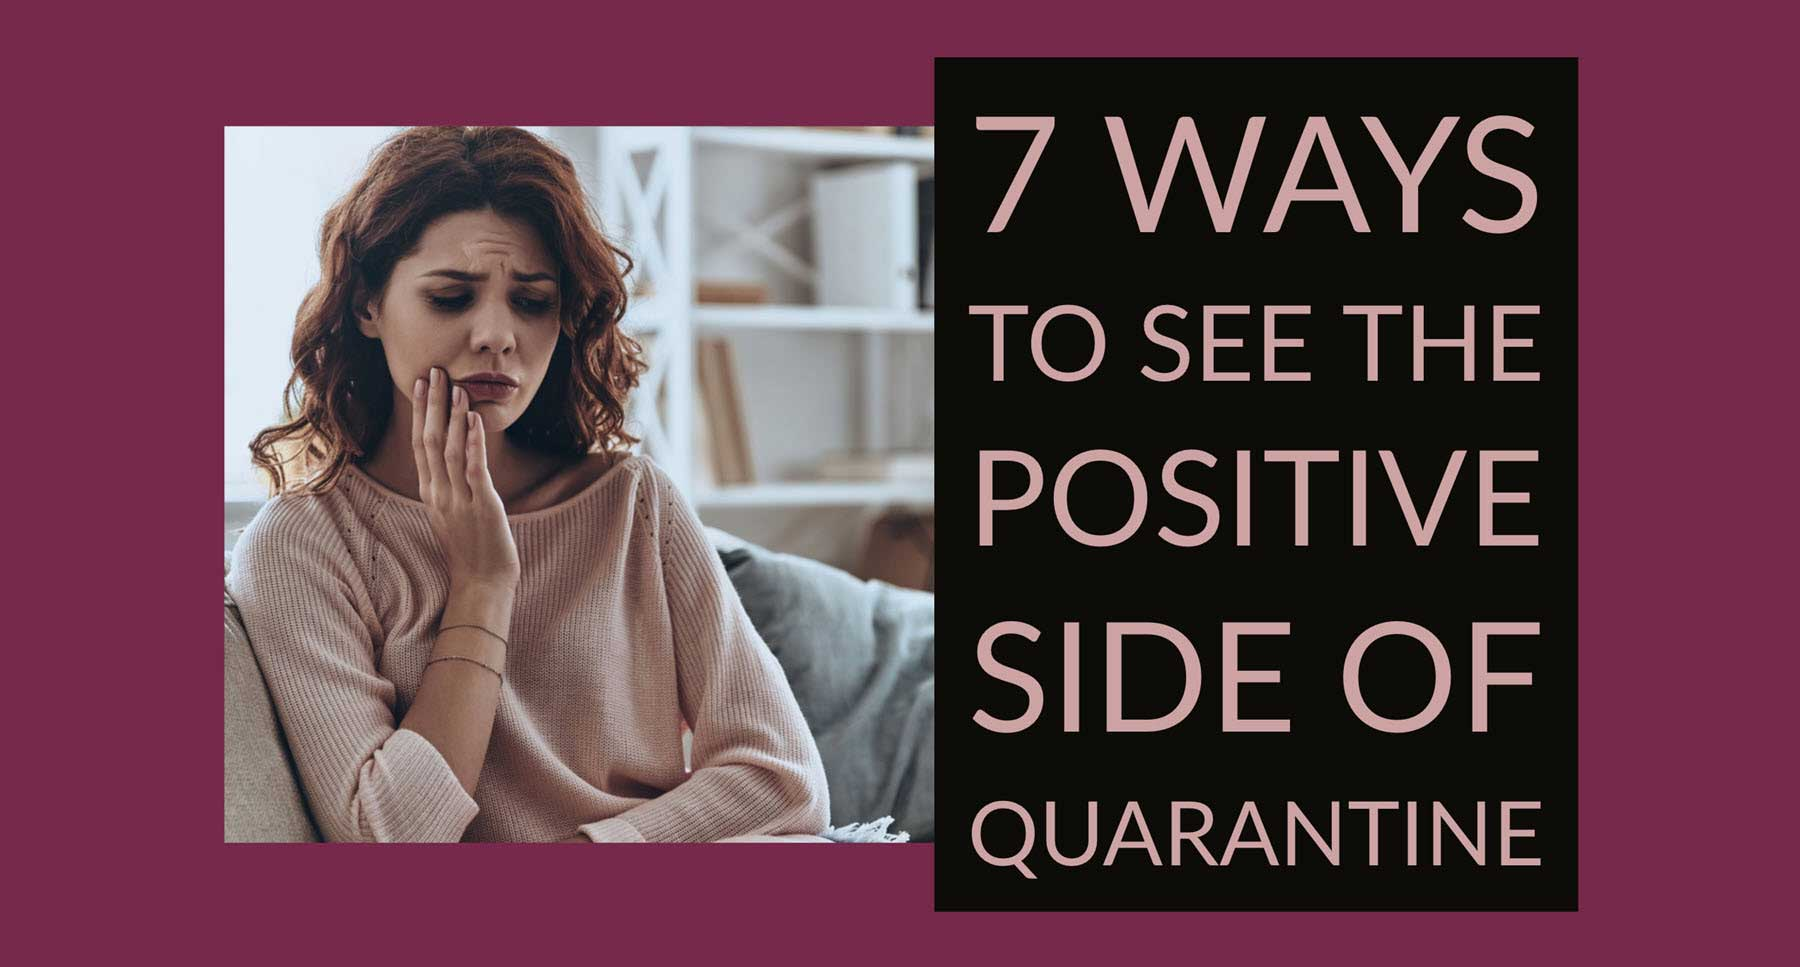 TheHopeLine-Checklist-Woman-depressed-from-isolating-quarantine-during-pandemic-7-Ways-to-See-the-Positive-Side-of-Quarantine